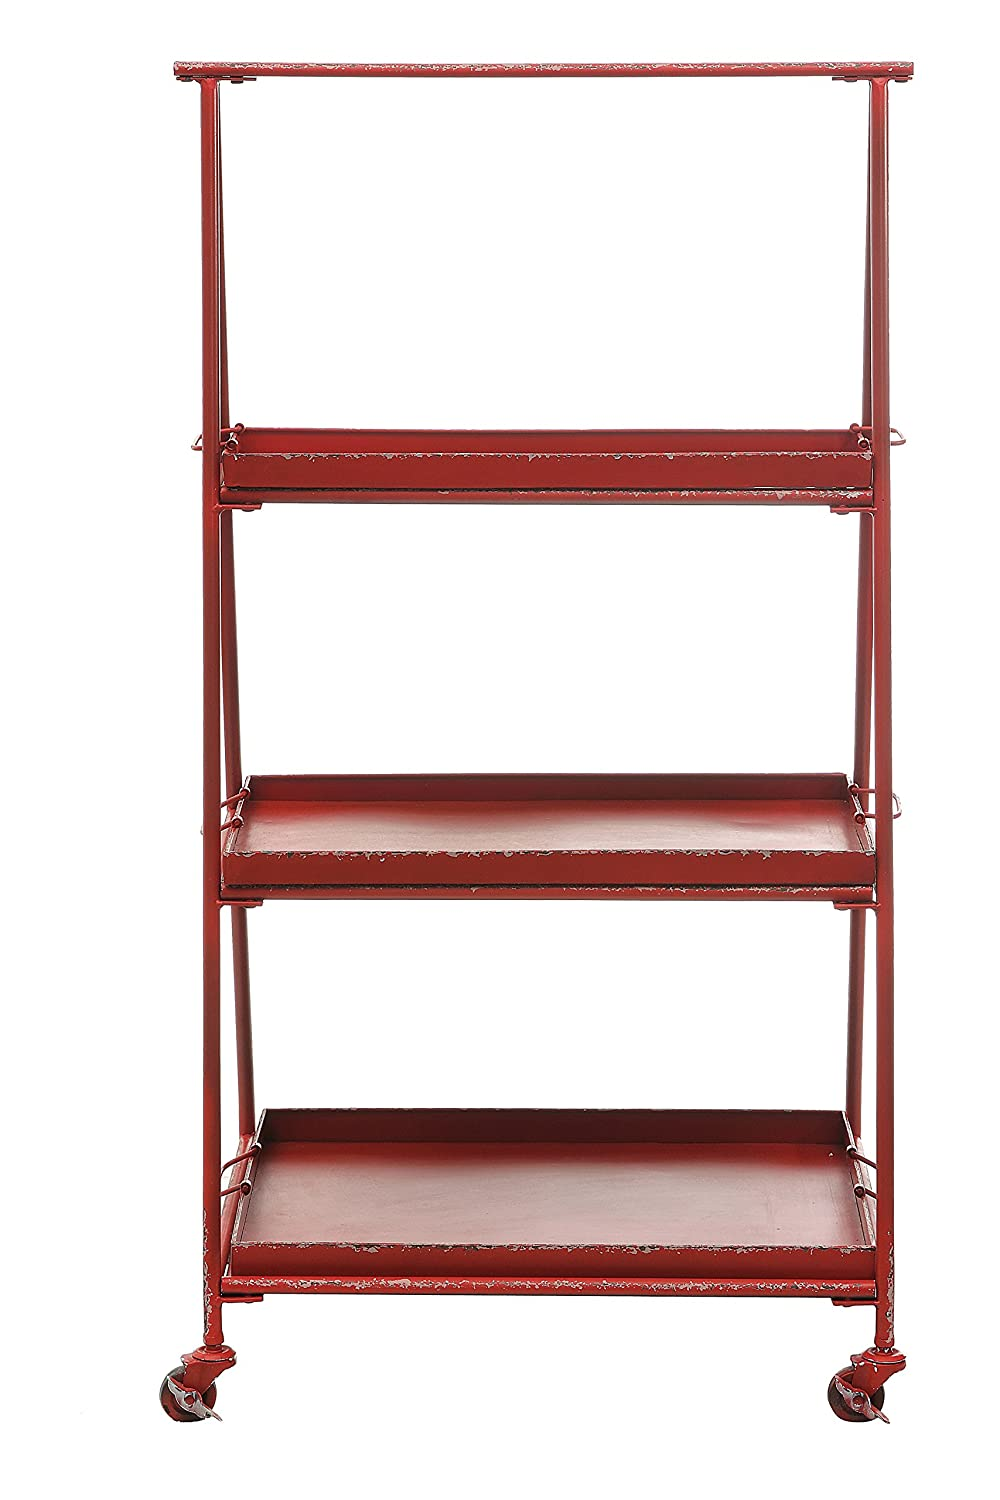 Brilliant Amazon Com Creative Co Op Red 3 Tier Metal Shelf On Caster Interior Design Ideas Clesiryabchikinfo